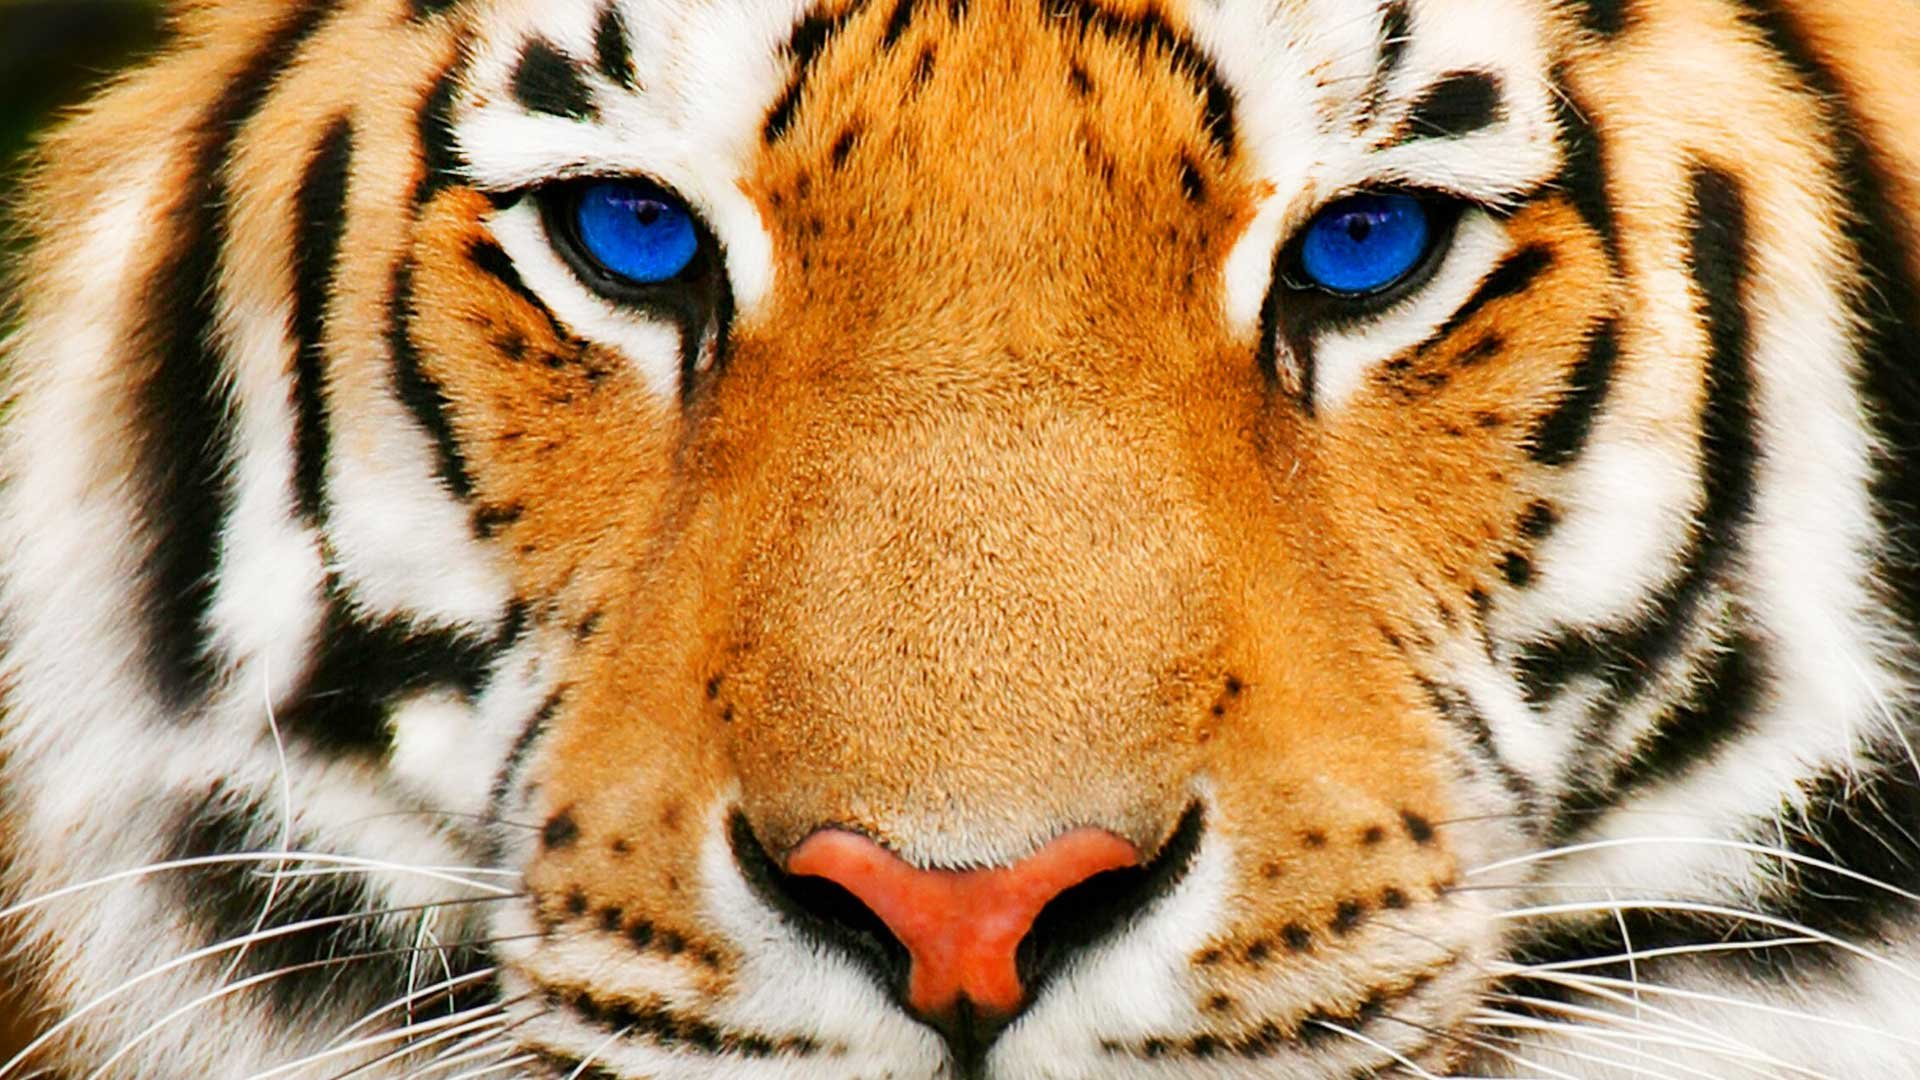 best tiger wallpaper id:115673 for high resolution hd 1080p computer